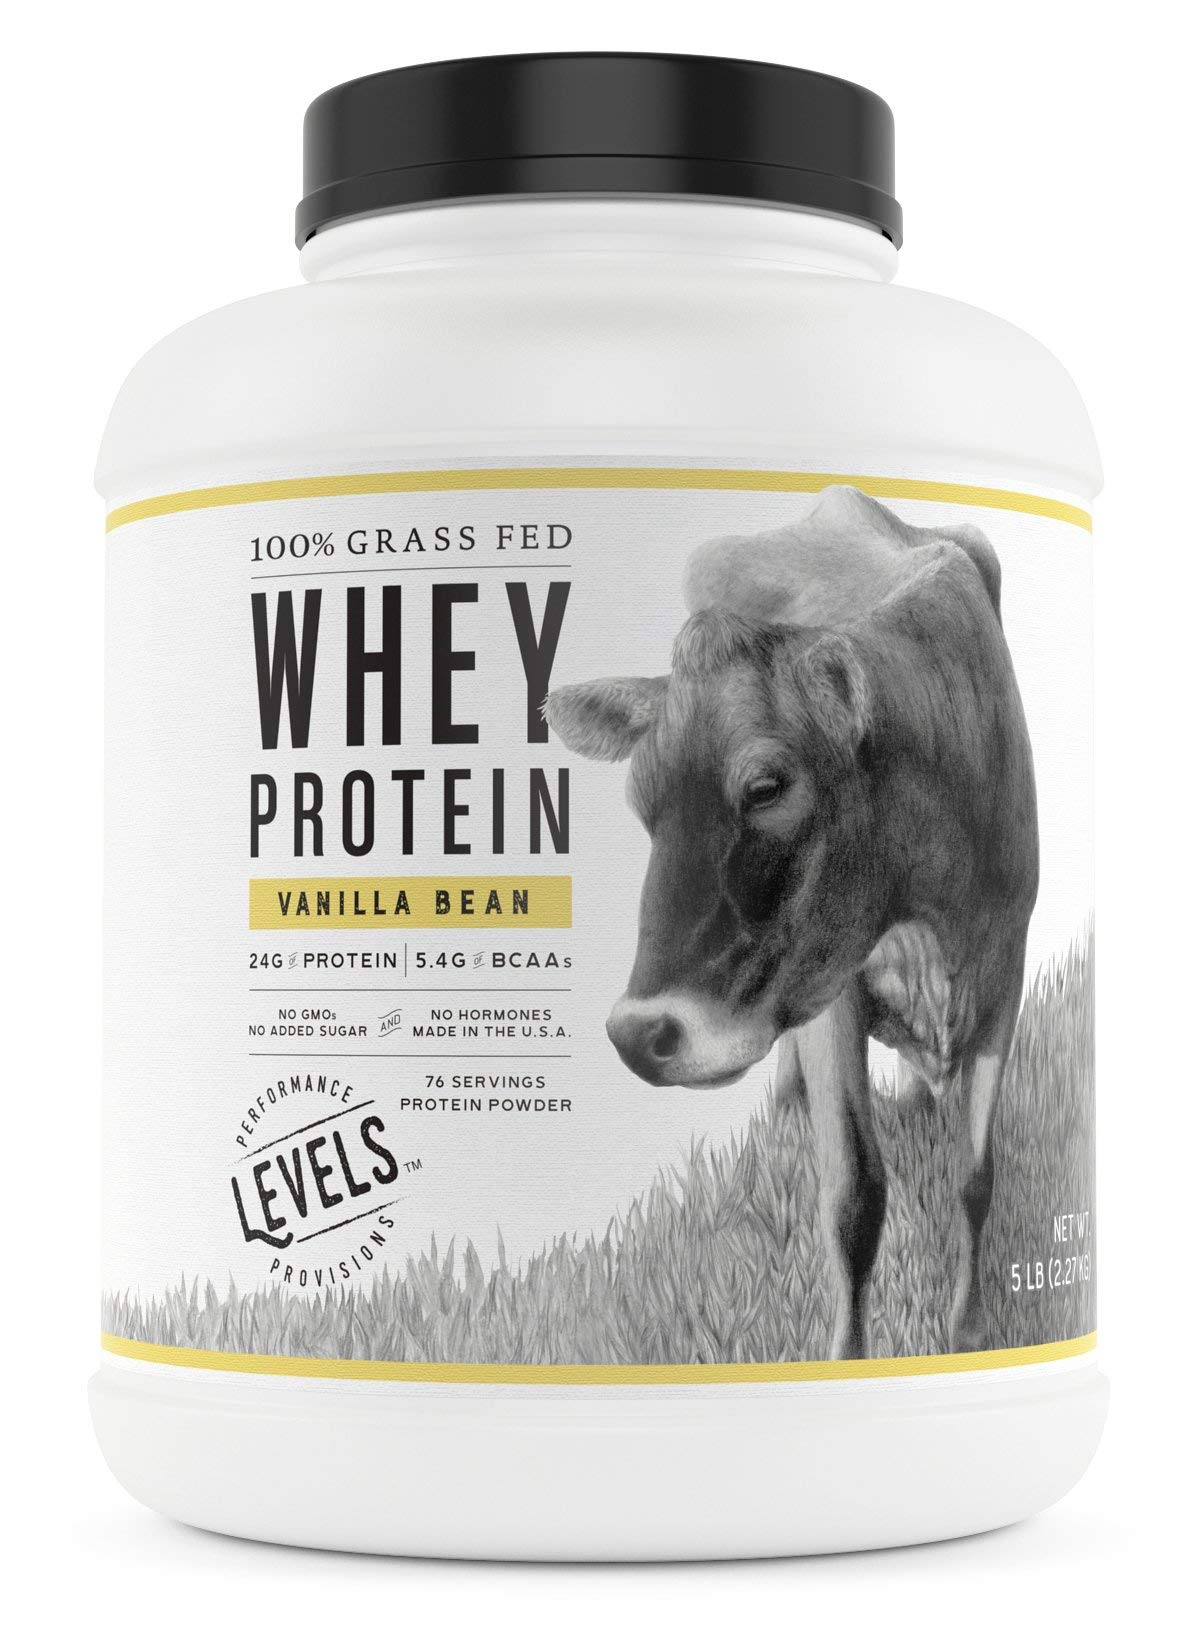 Levels 100% Grass Fed Whey Protein, No GMOs, Vanilla Bean, 5LB by Levels Nutrition